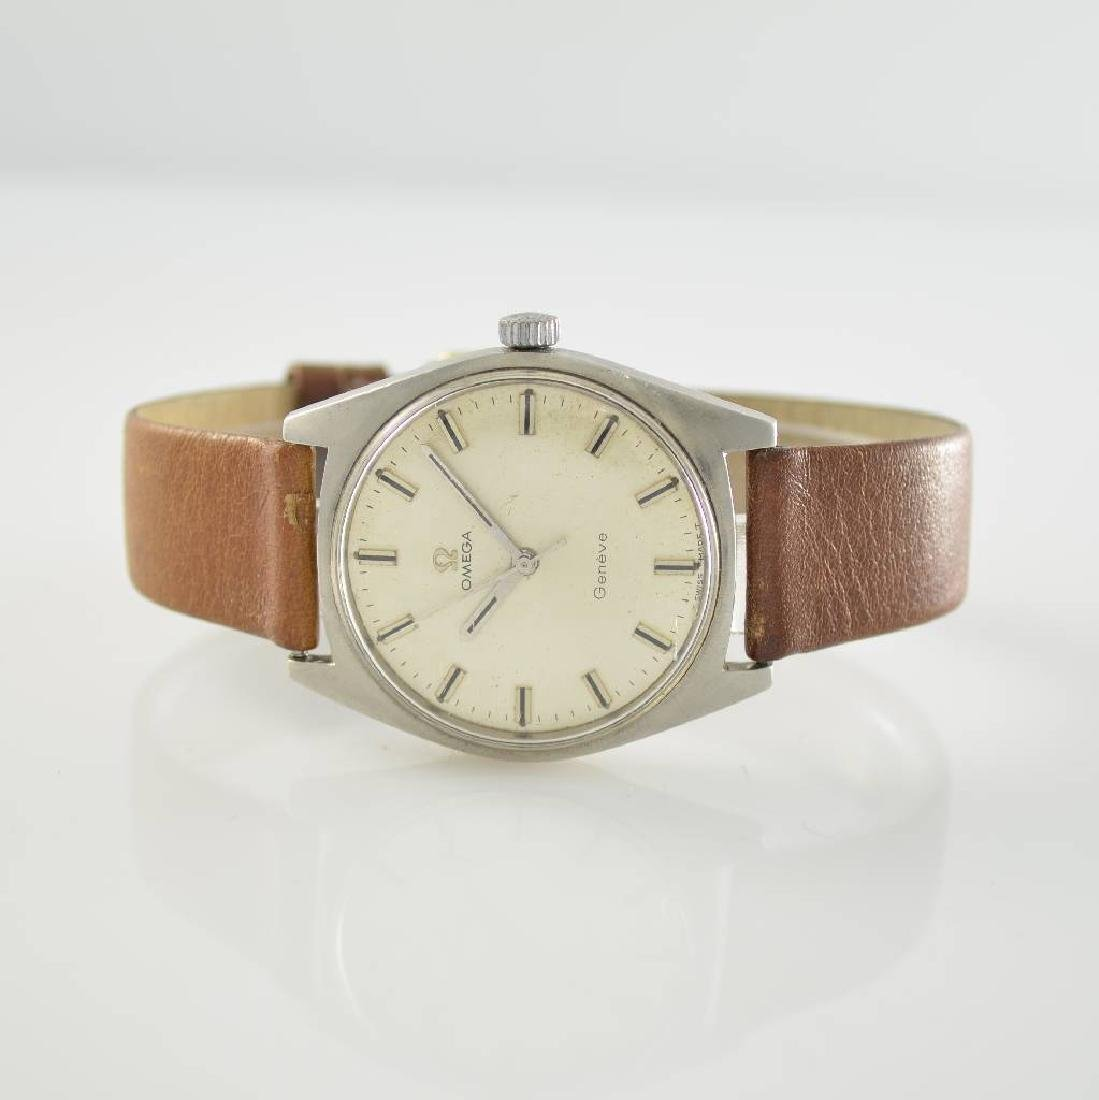 OMEGA manual wound gents wristwatch series Geneve